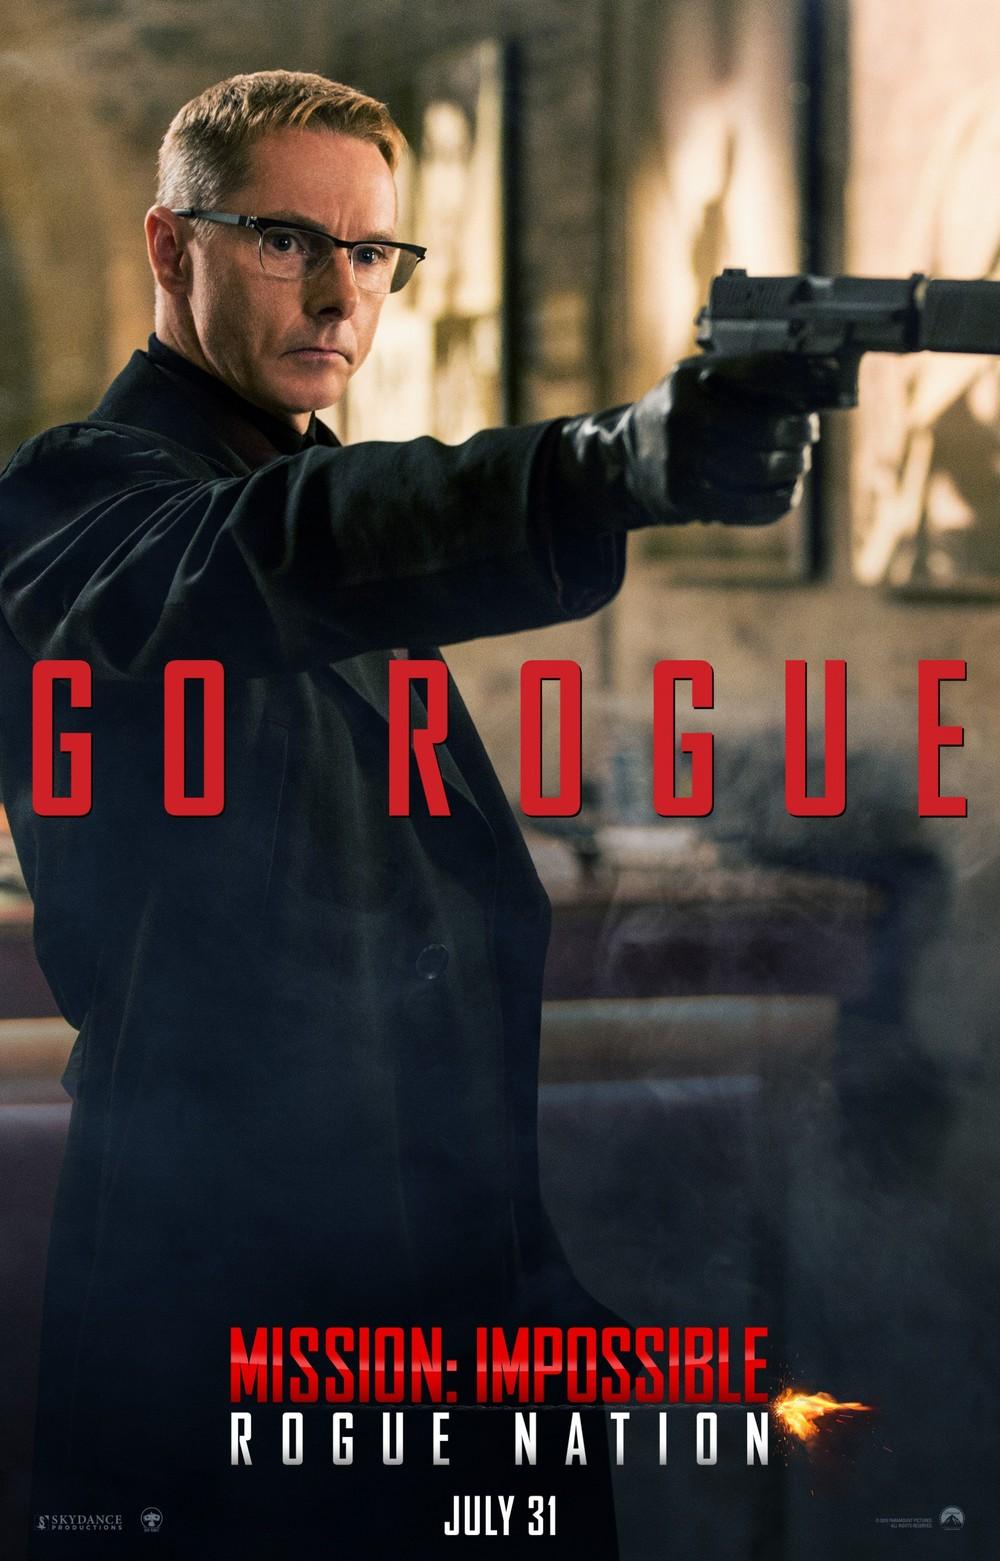 mission.impossible.rogue.nation